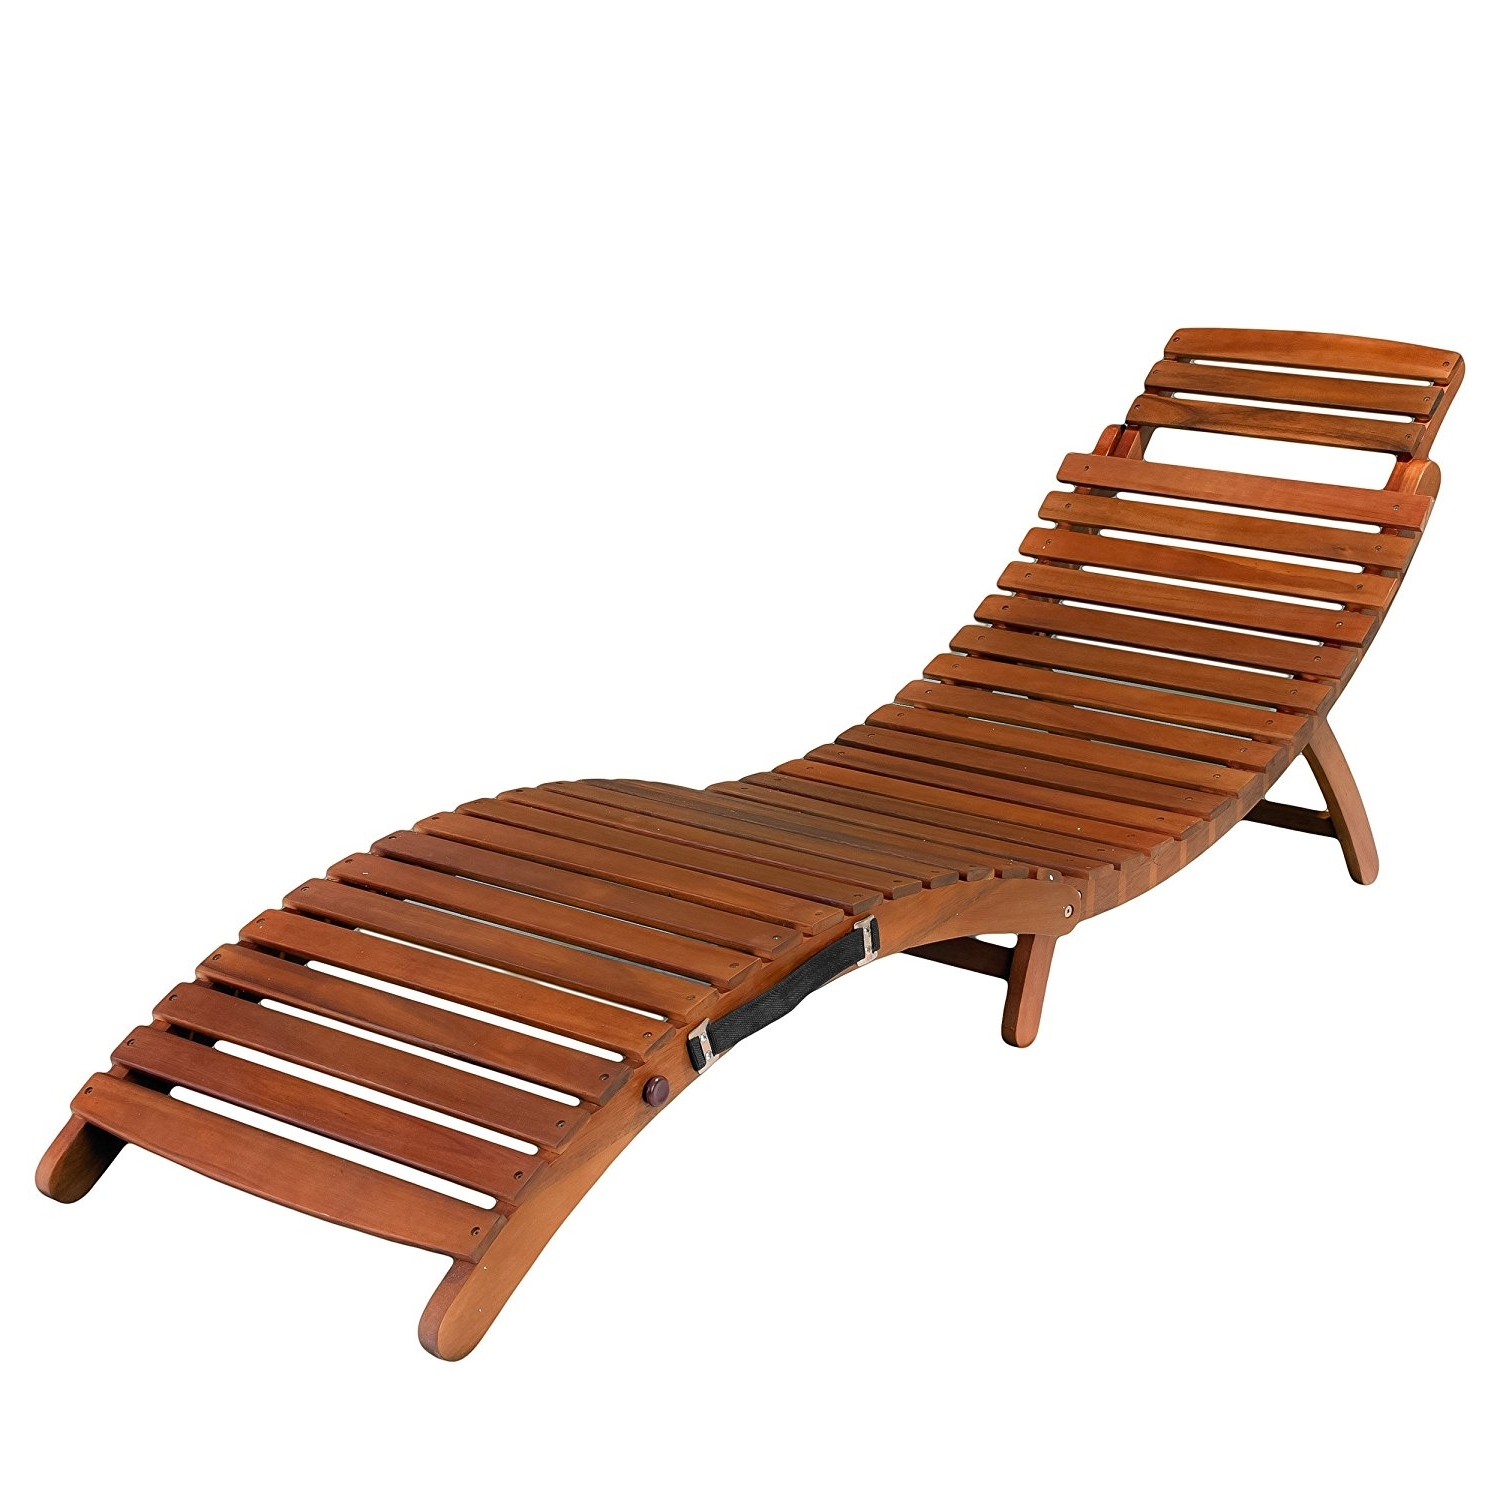 Amazon: Best Selling Del Rio Wood Outdoor Chaise Lounge Throughout 2018 Teak Chaise Lounges (View 7 of 15)